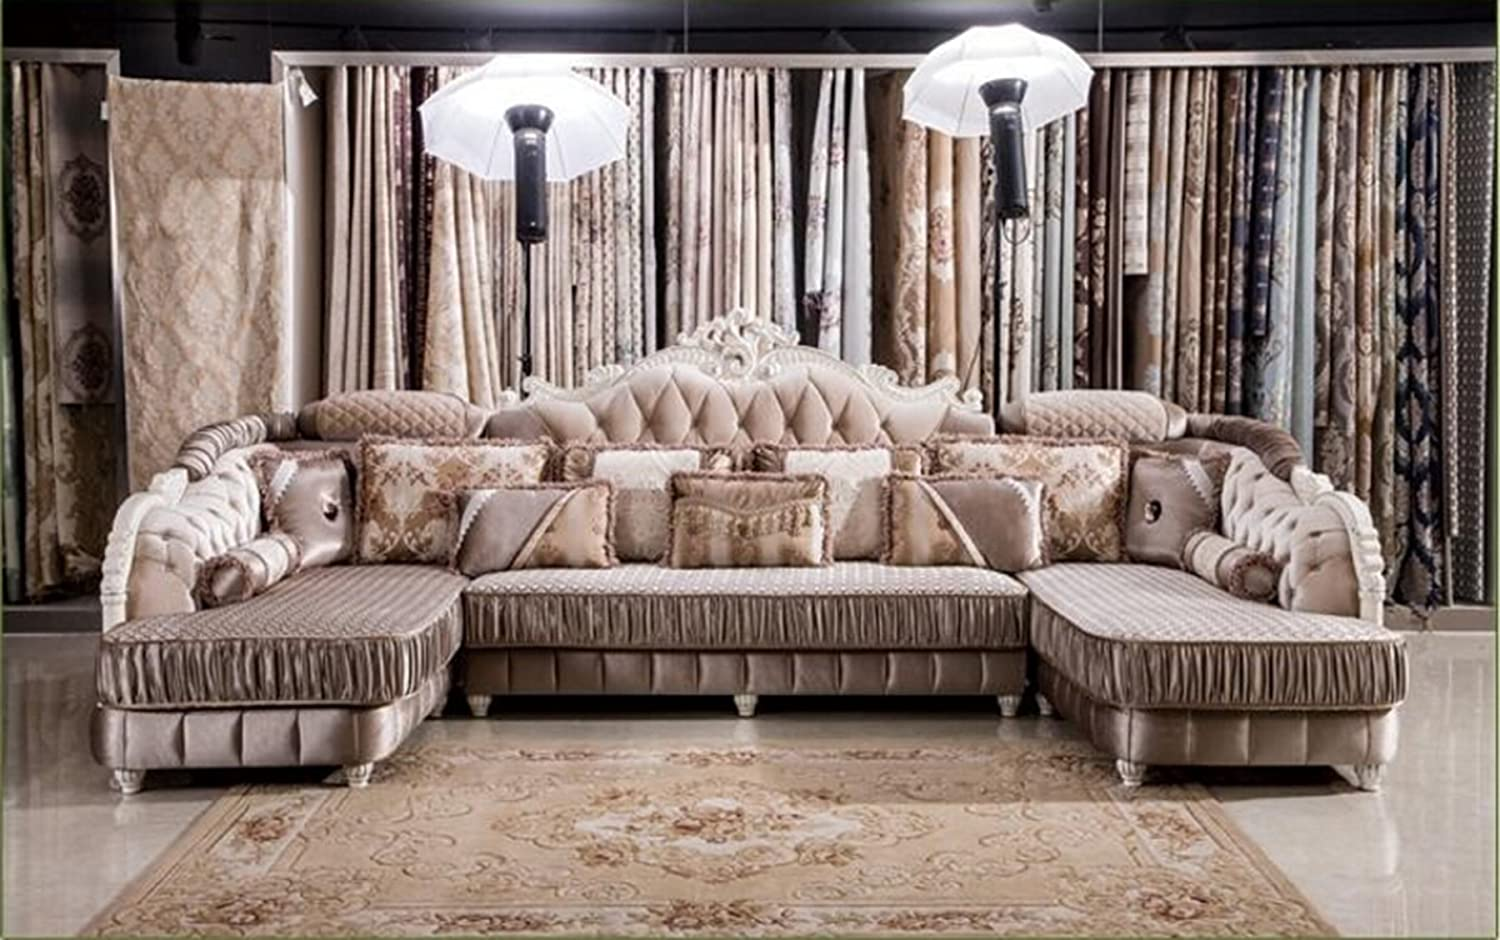 Popular european style living room furniture sectional sofa set in fabric u01 amazon ca home kitchen